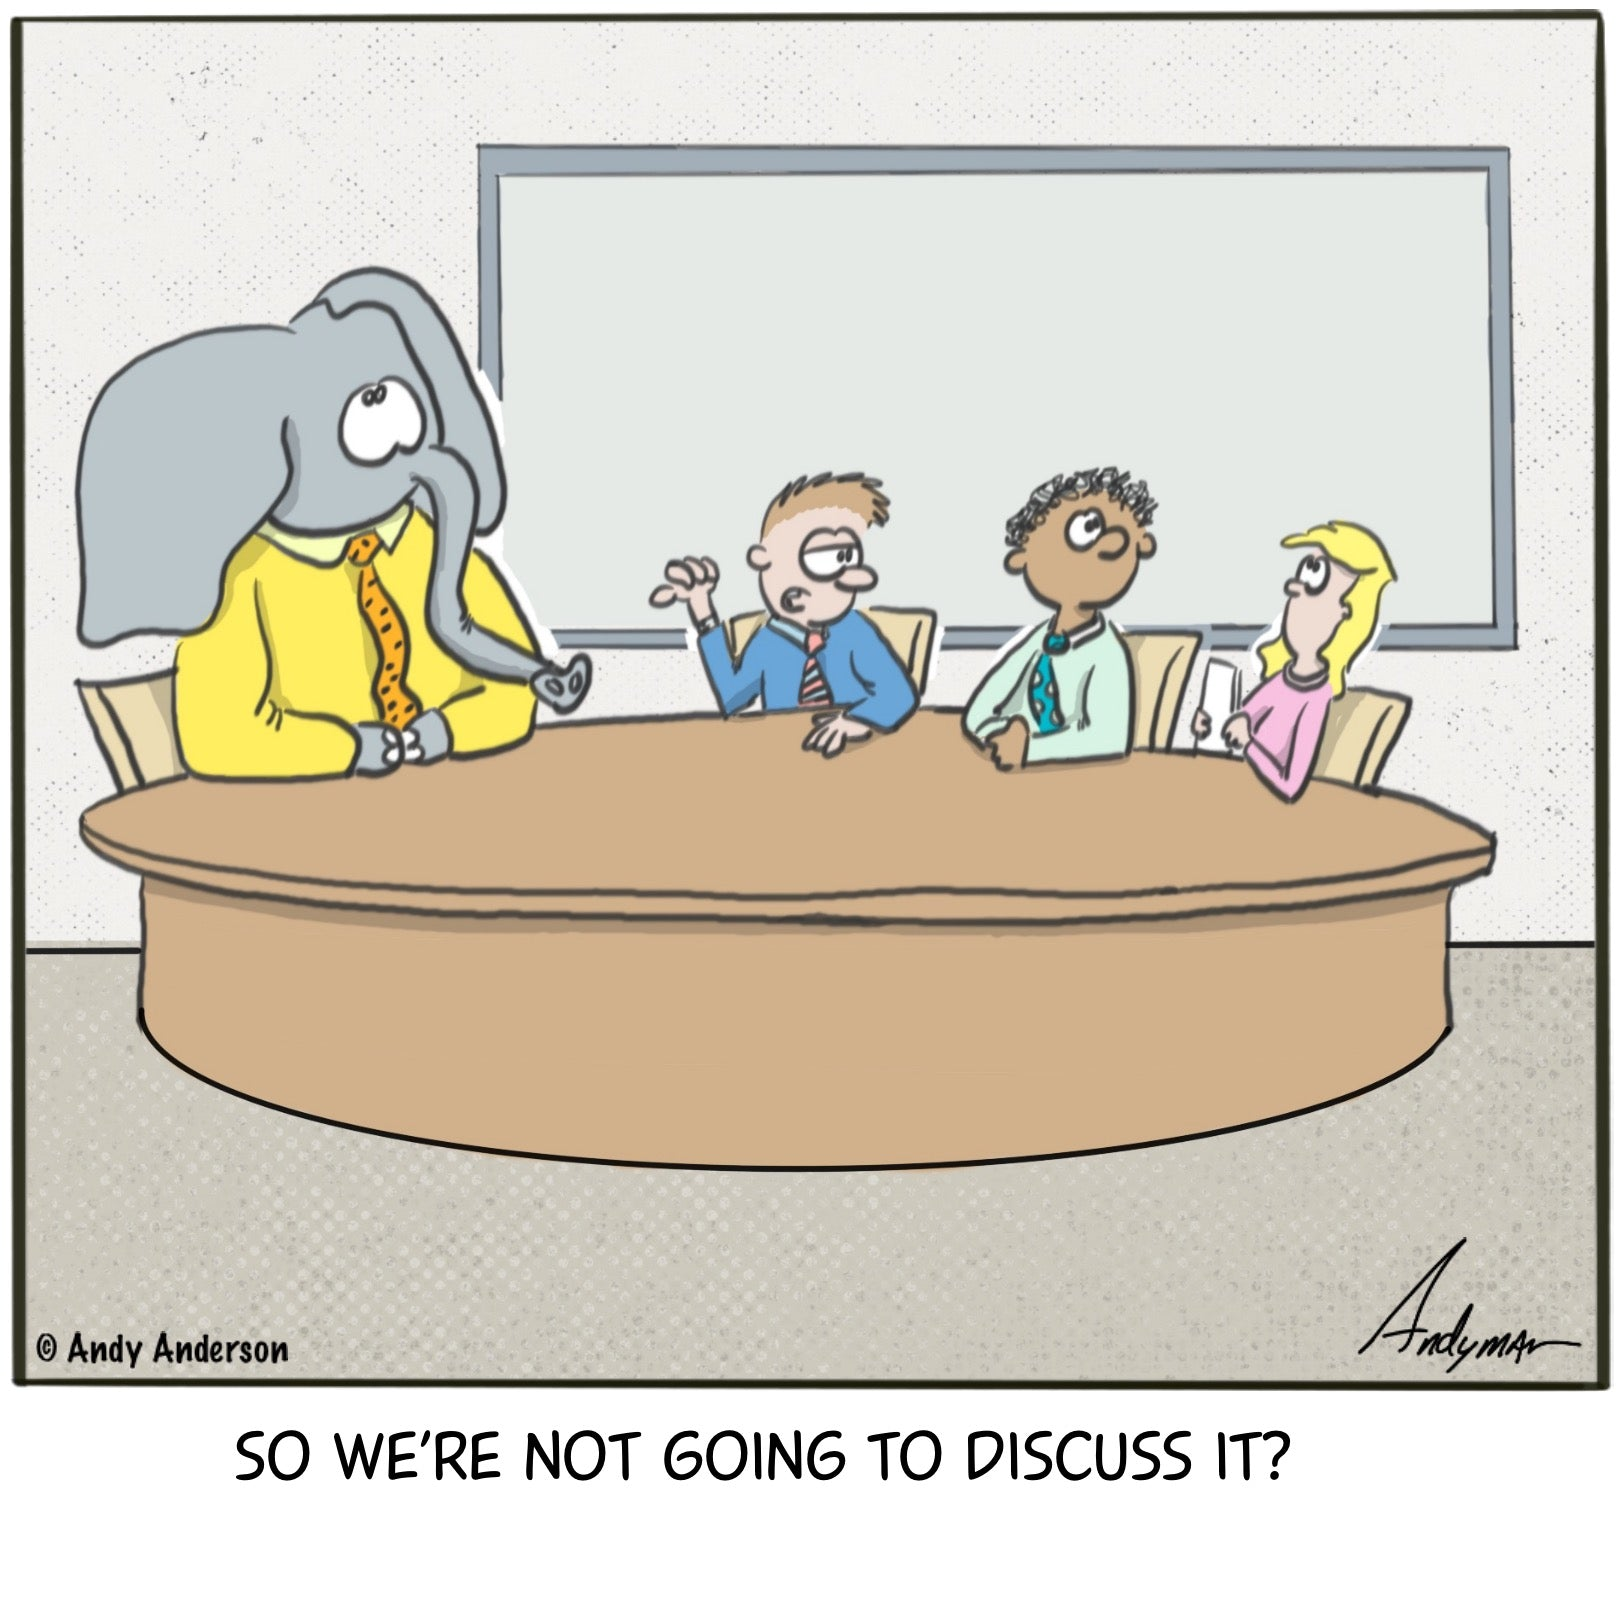 Cartoon about no one willing to talk about an elephant in the room